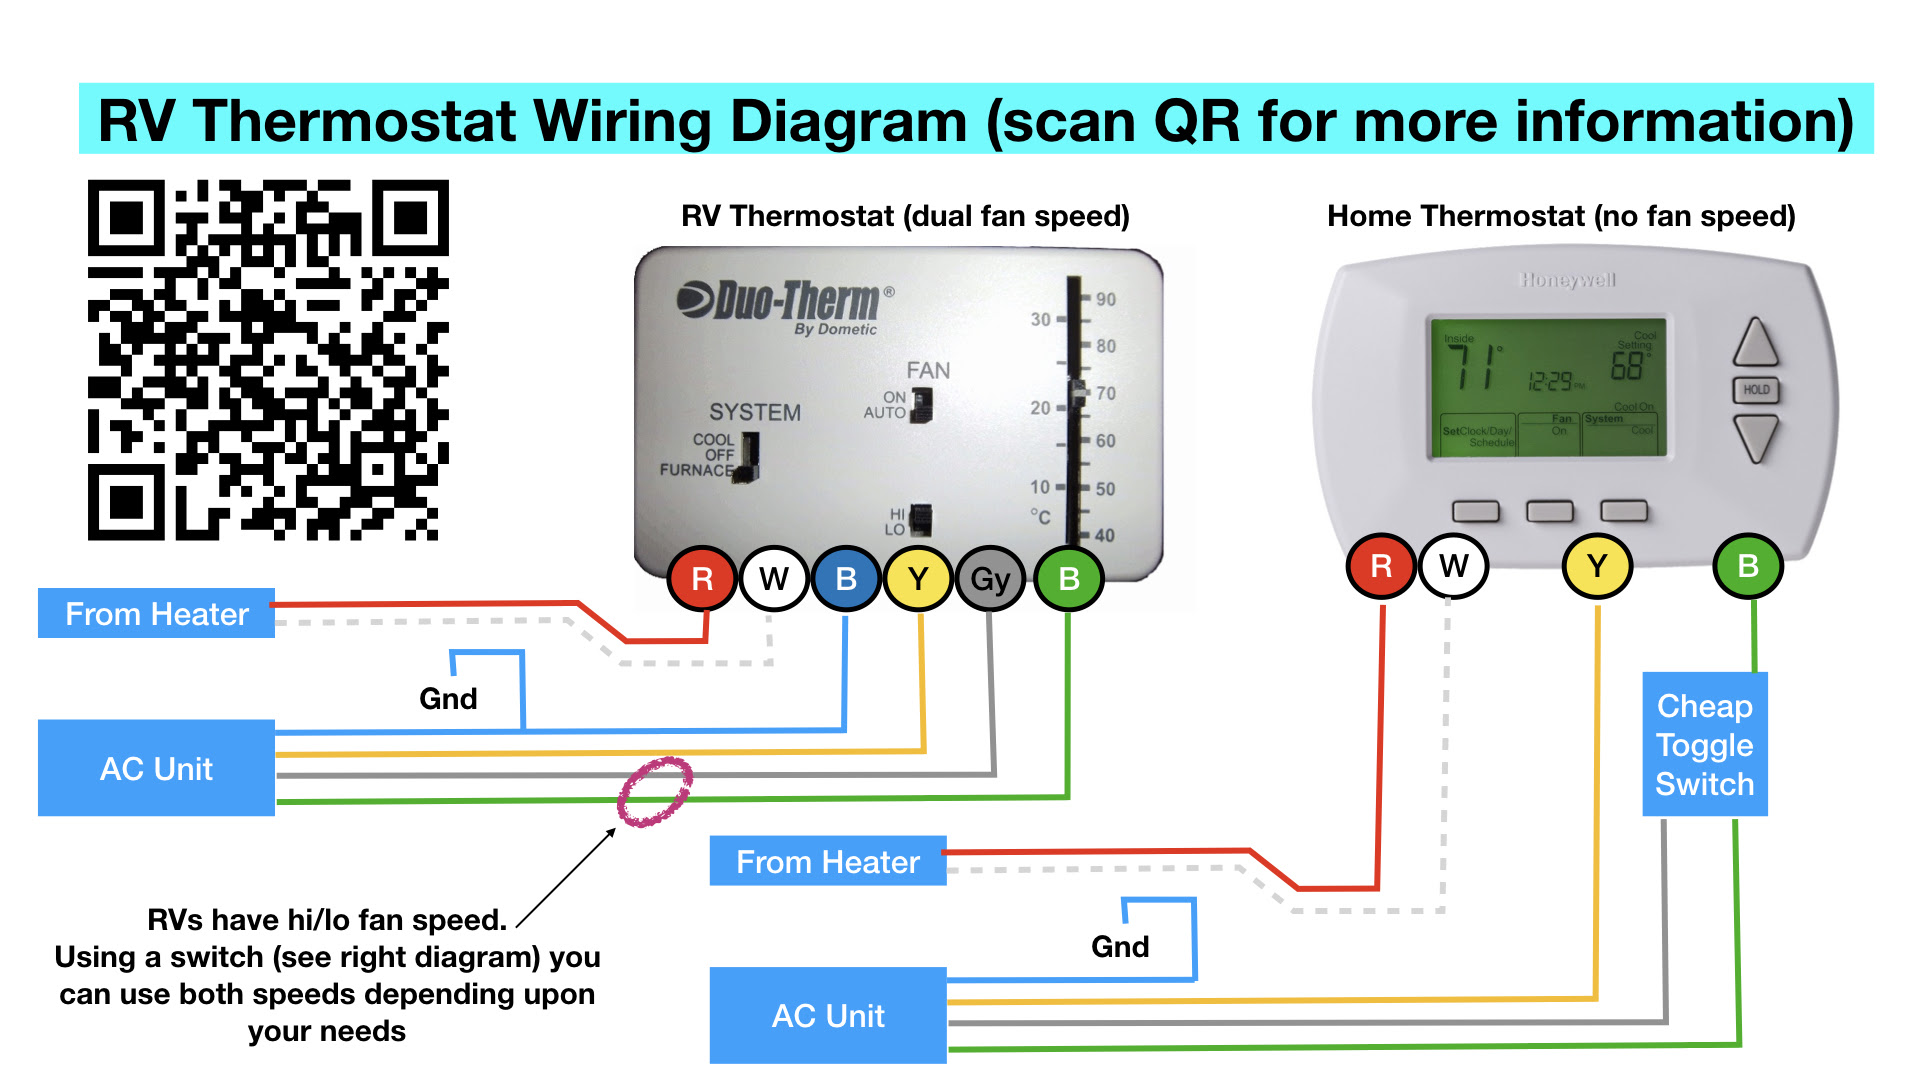 Diagram Hvac How Can I Modify A 4 Wire Thermostat To A New Thermostat Requiring C Wire Wiring Diagram Full Version Hd Quality Wiring Diagram Devdiagramkp Orbicolare It